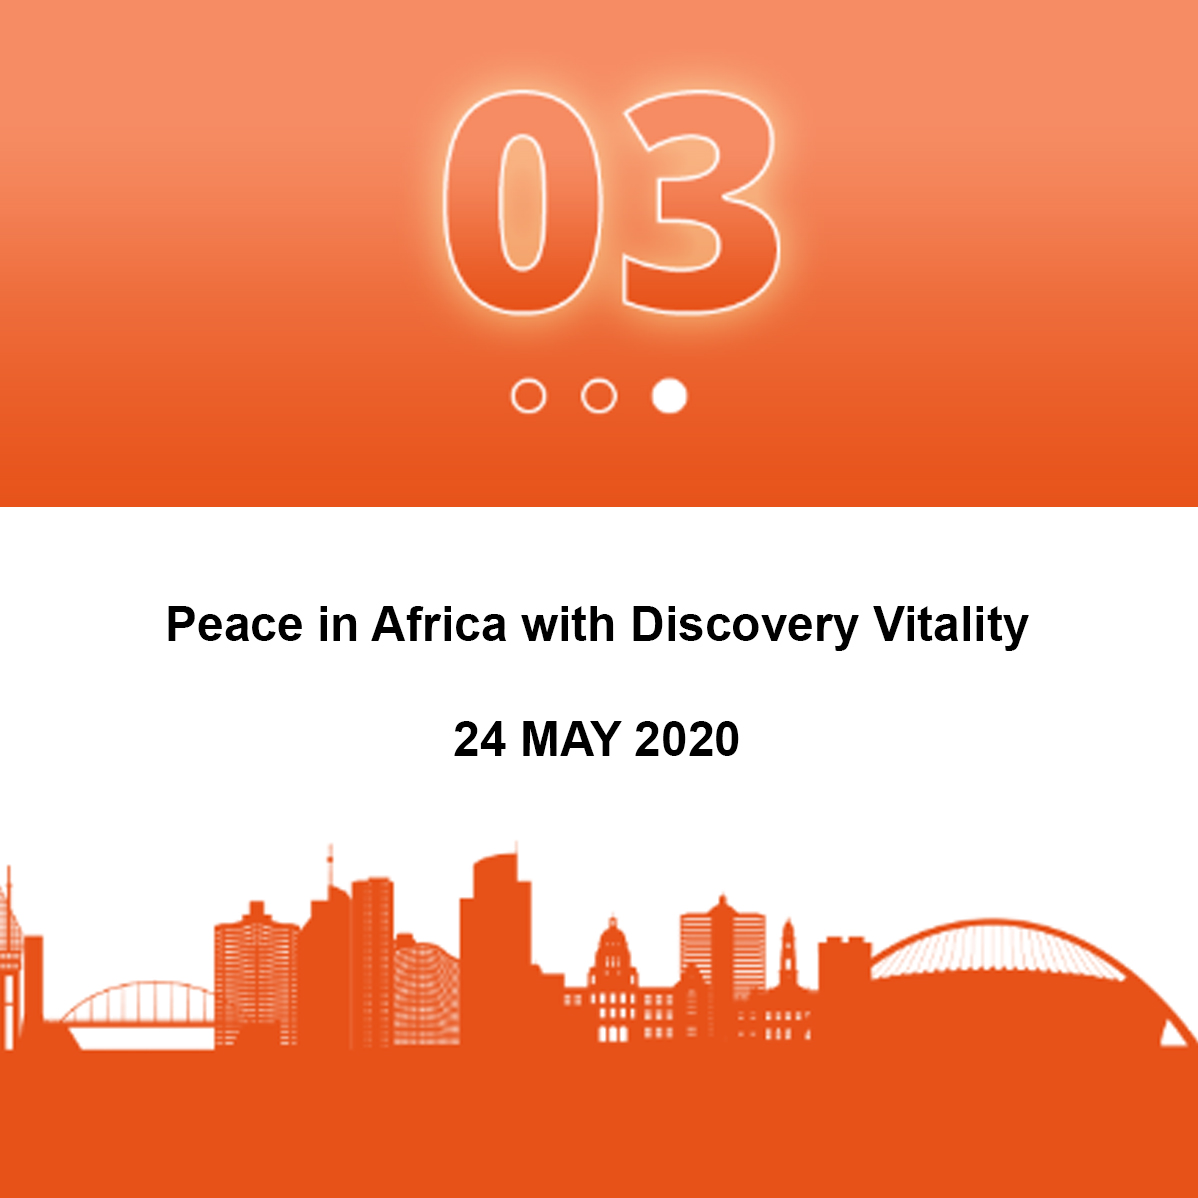 Peace in Africa with Discovery Vitality (2020)